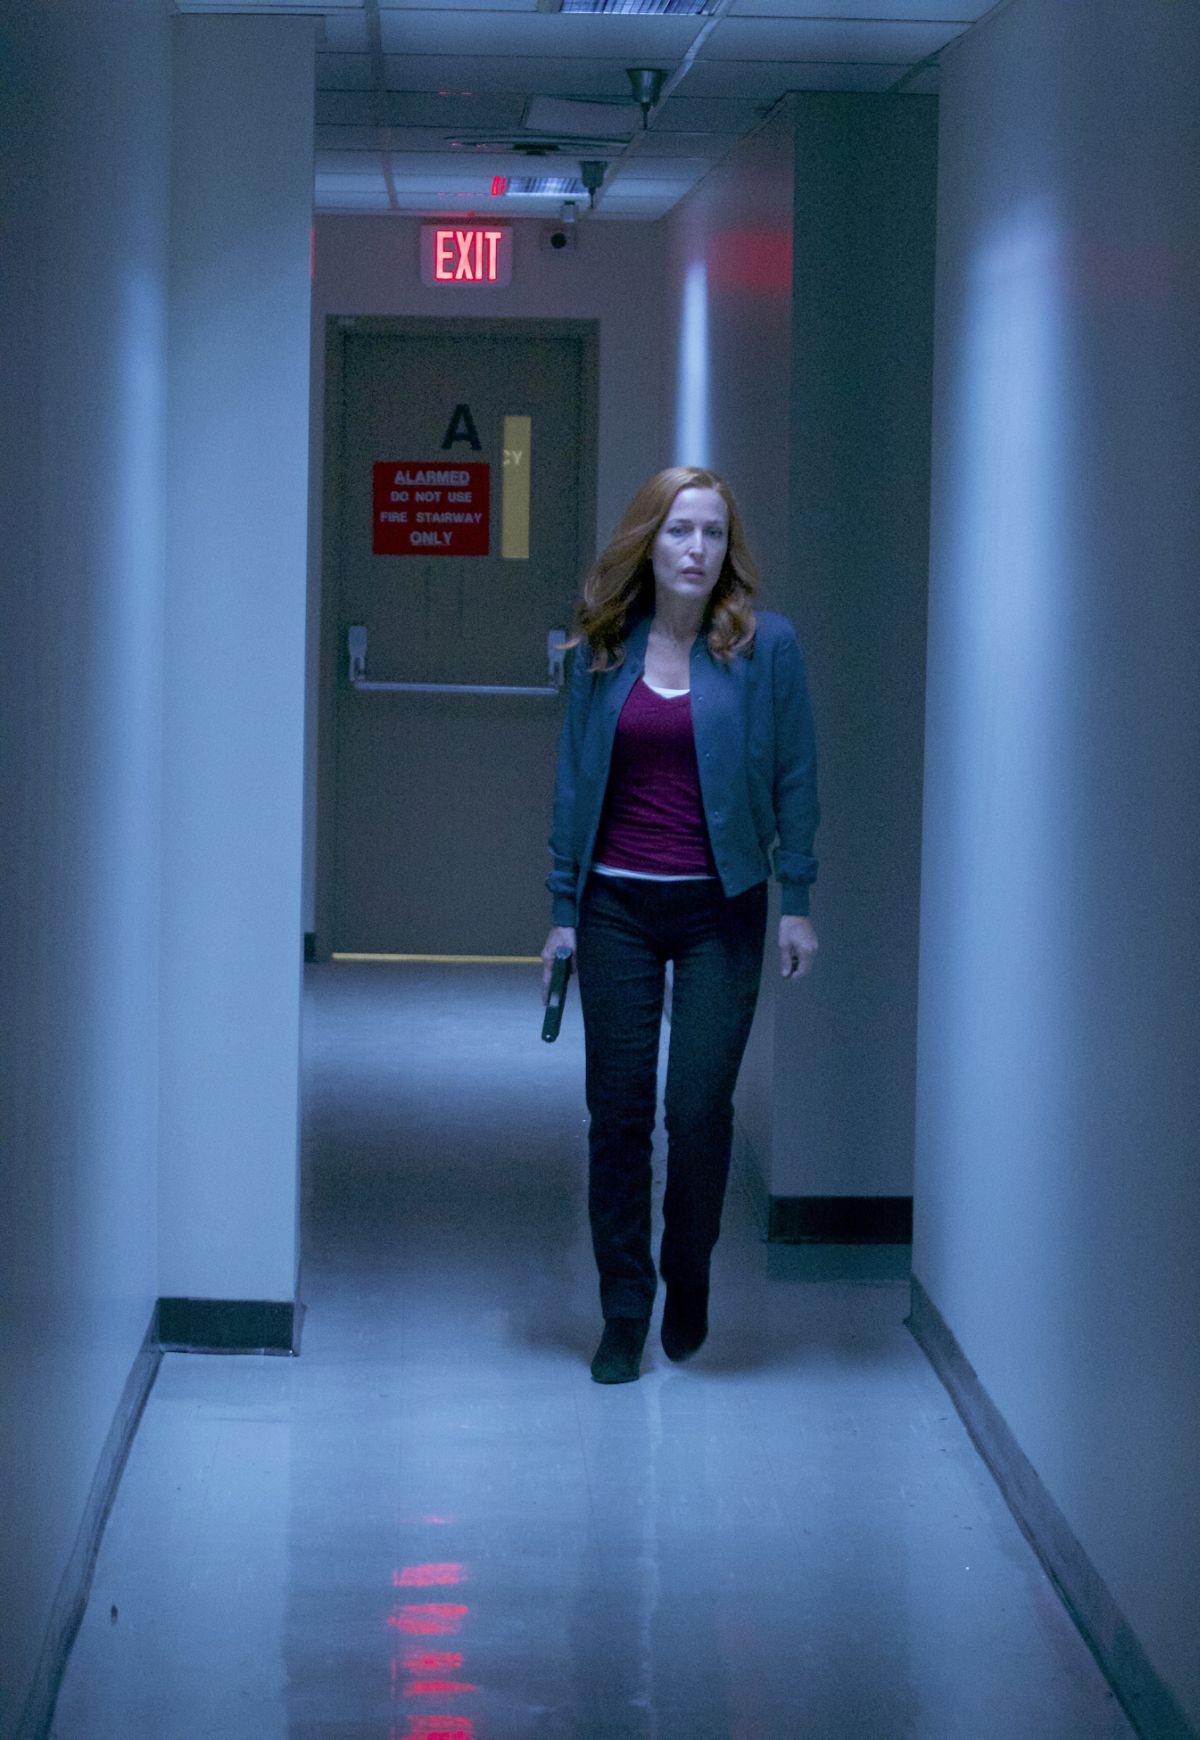 30-new-images-from-the-x-files-season-11-and-an-amusing-alien-prank-video28.jpeg